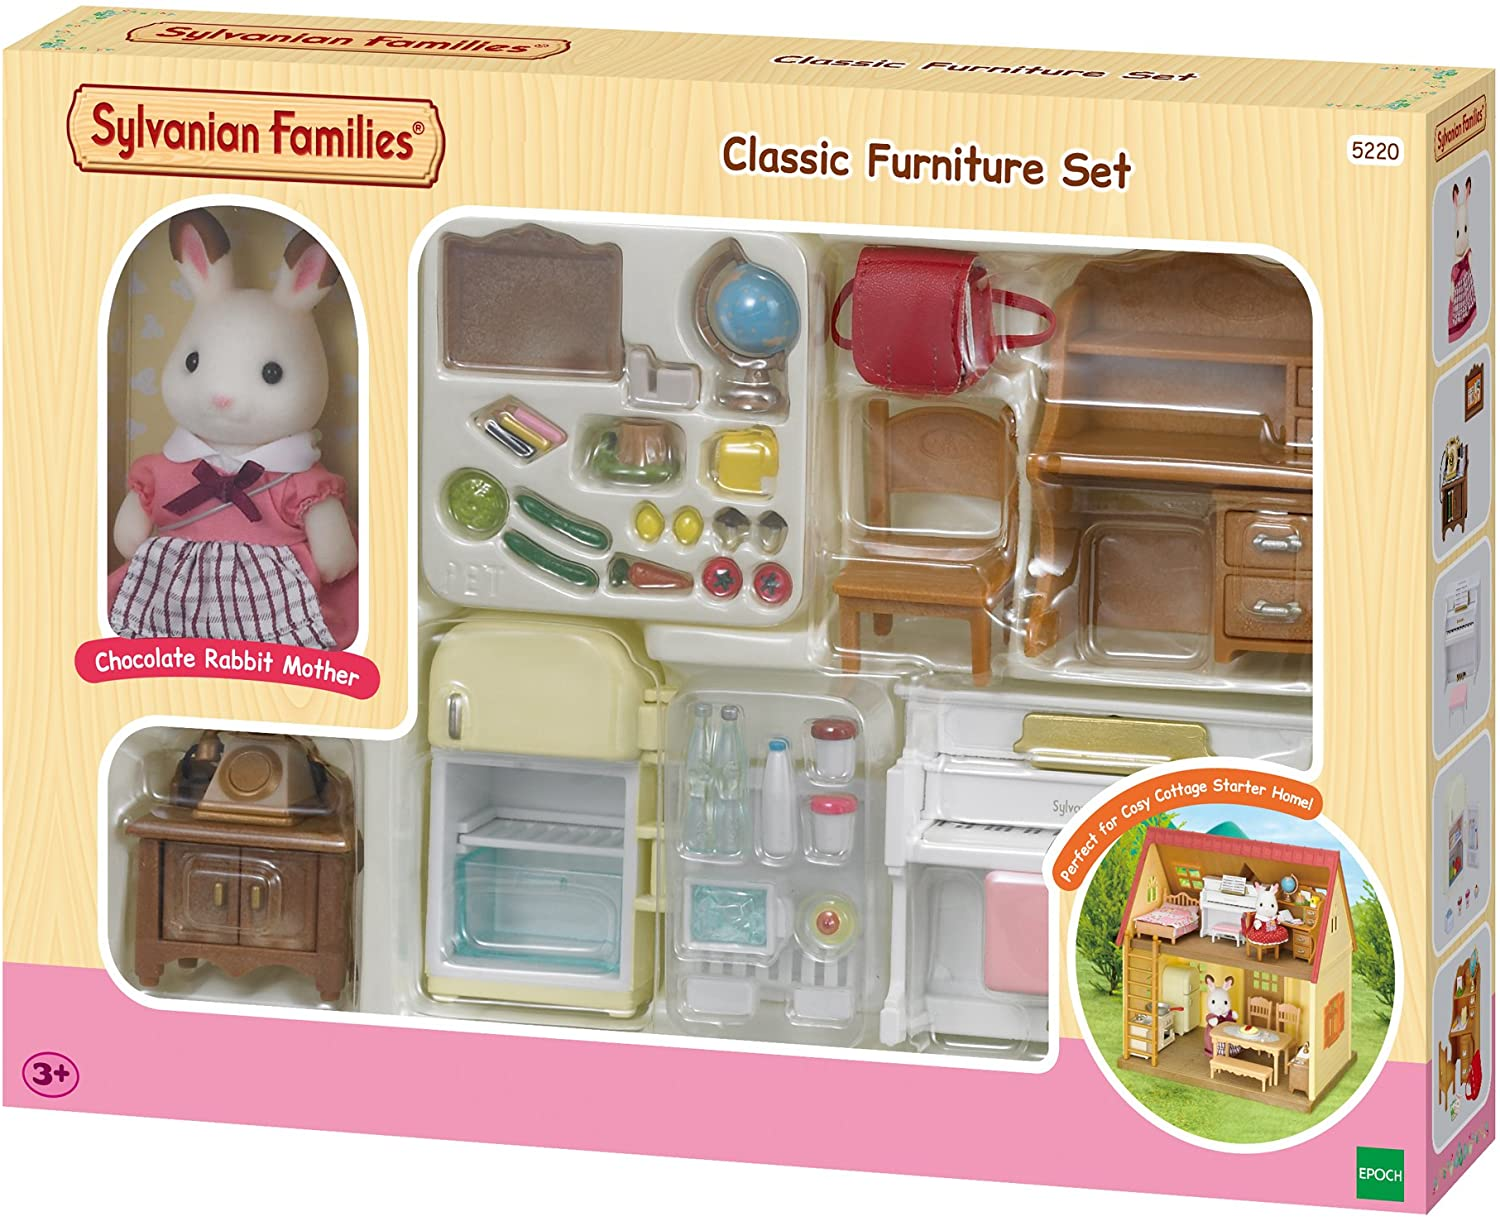 Sylvanian Families Classic Furniture Set for Cosy Cottage Starter Home, Multicolor